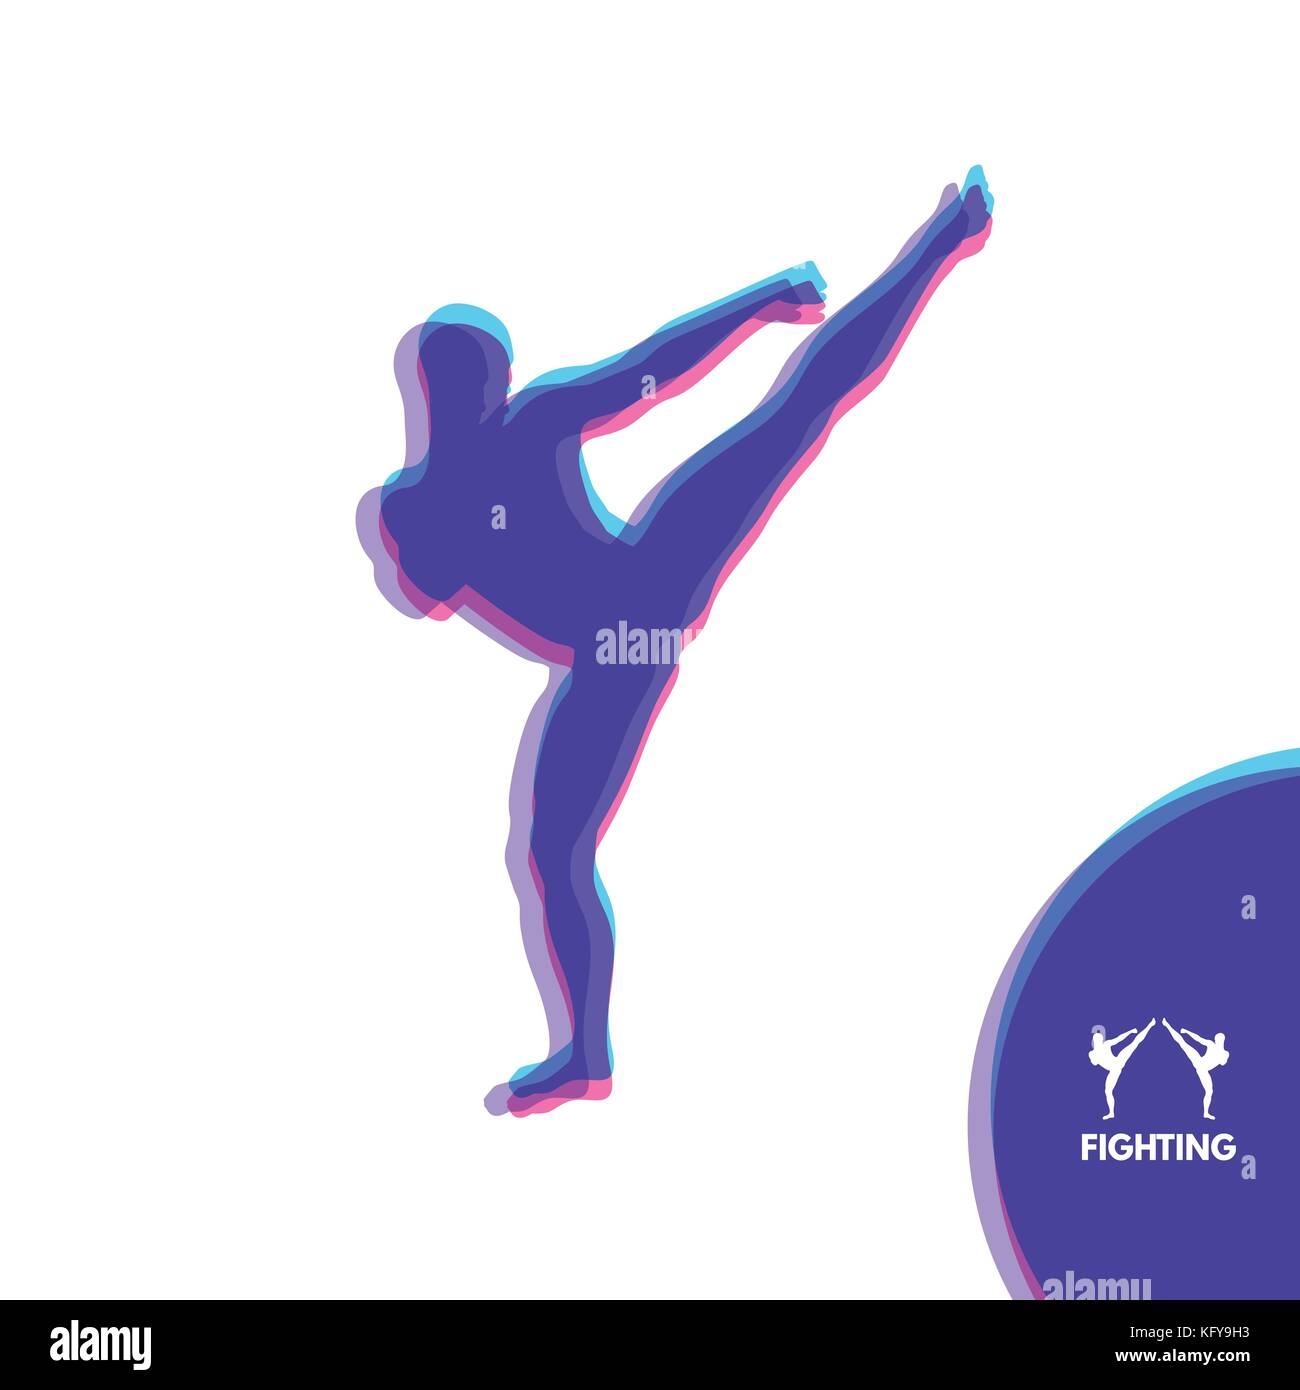 Kickbox fighter preparing to execute a high kick. Silhouette of a fighting man. Design template for Sport. Emblem - Stock Image